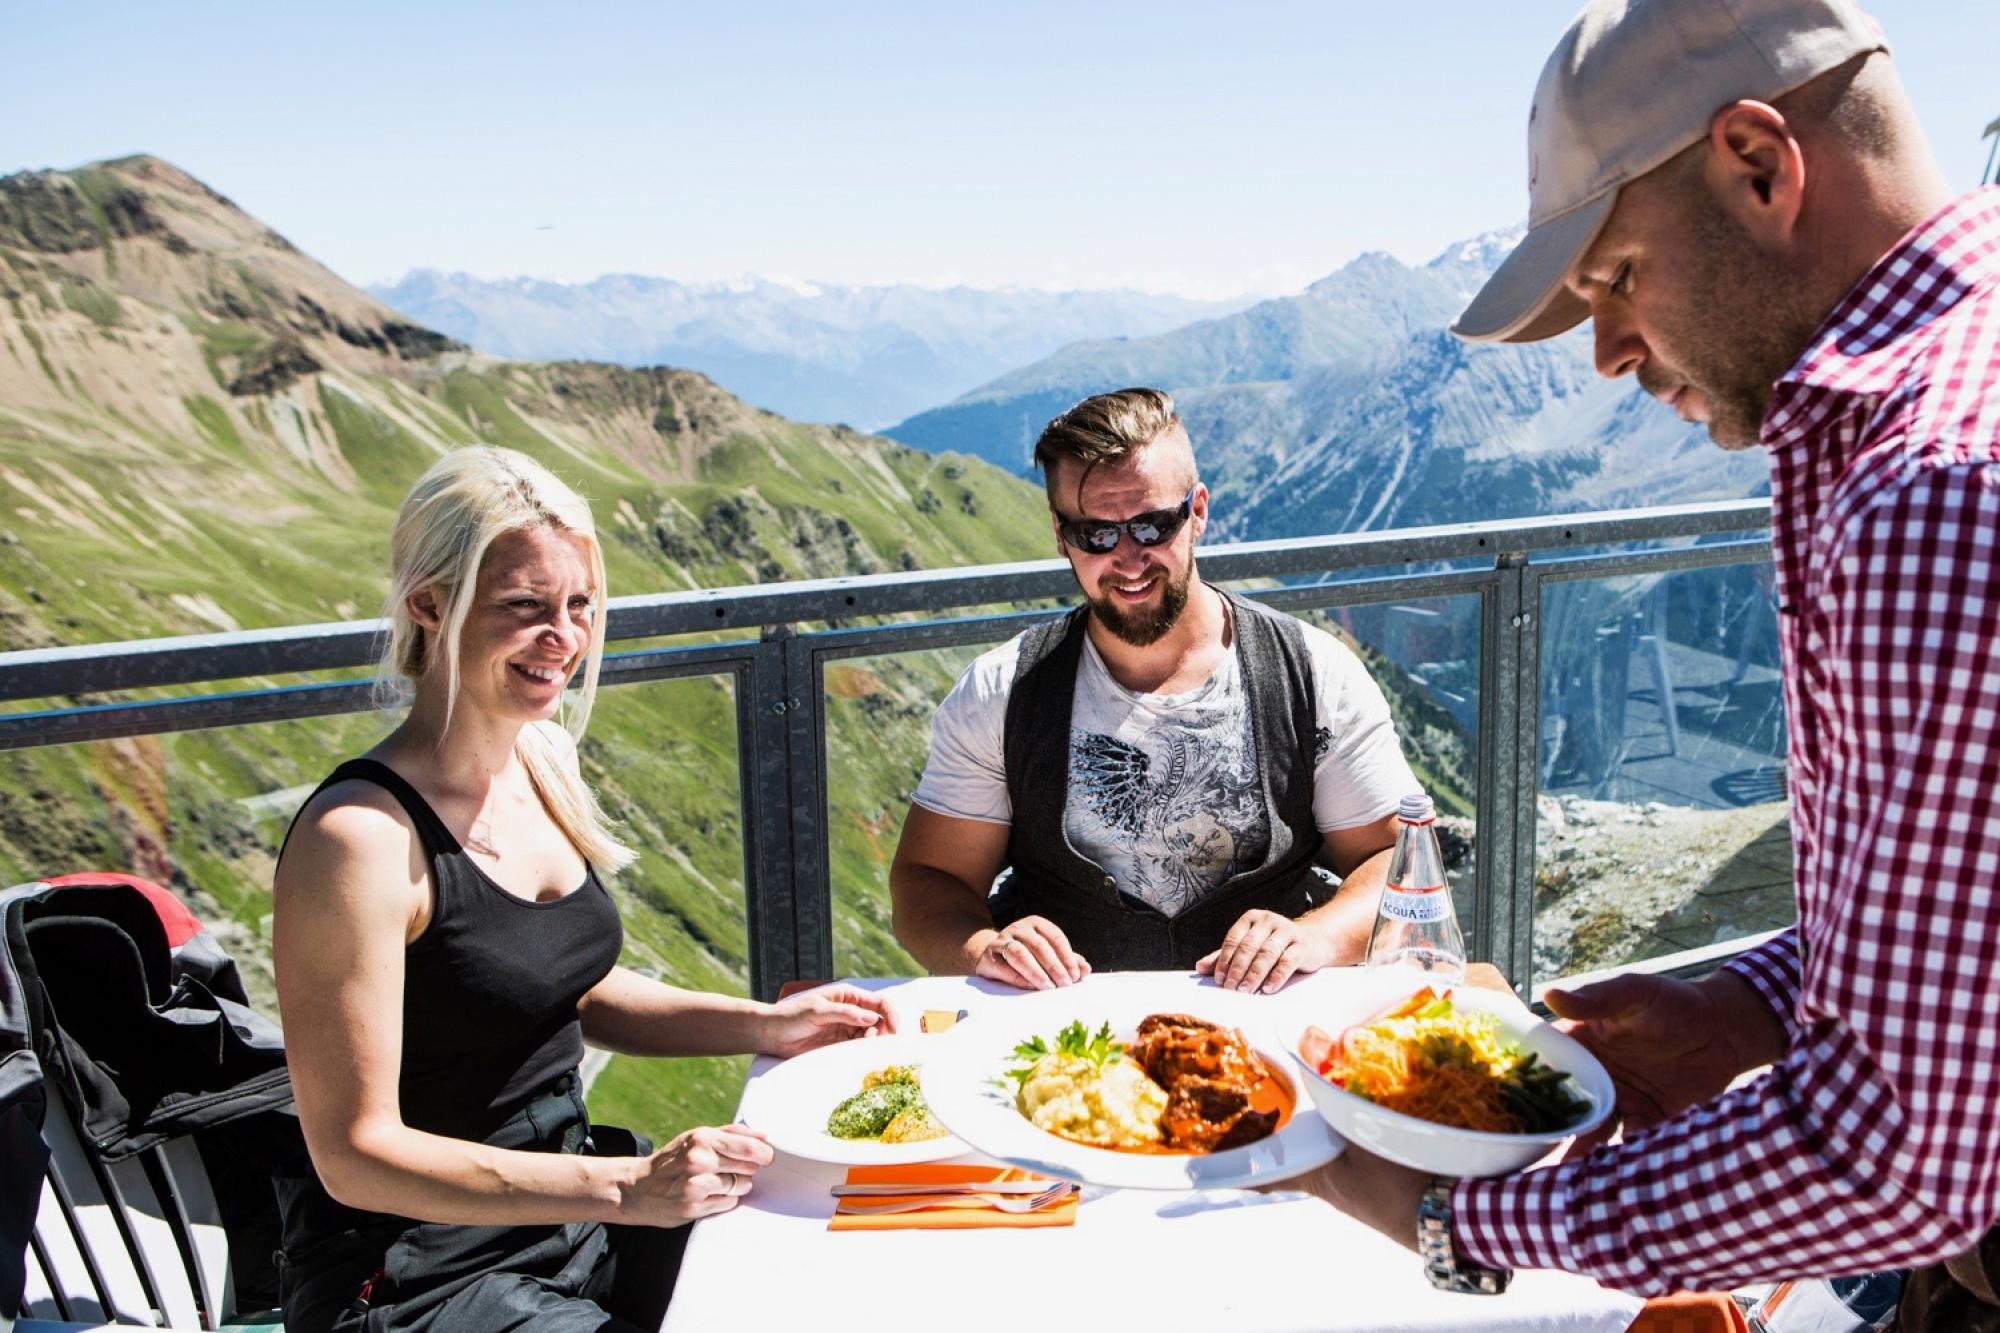 Restaurant Tibet Hut on the Stelvio Pass